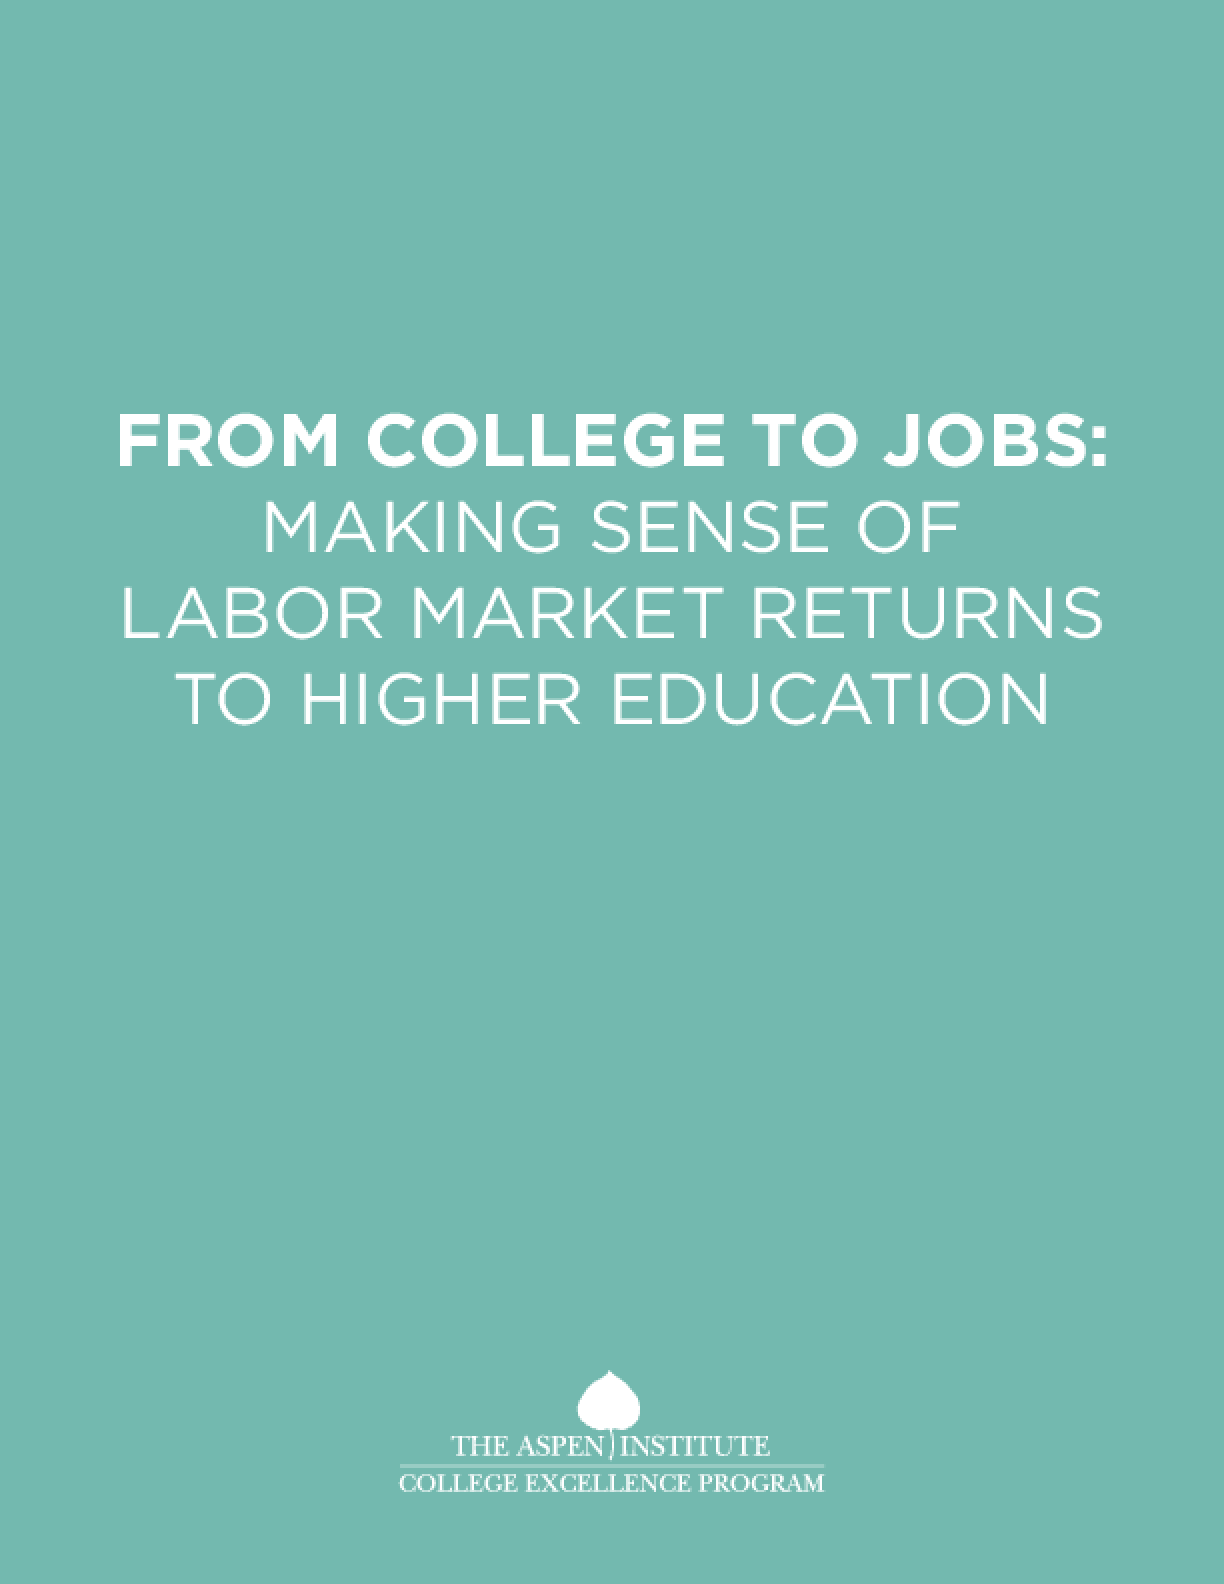 From College To Jobs: Making Sense of Labor Market Returns To Higher Education